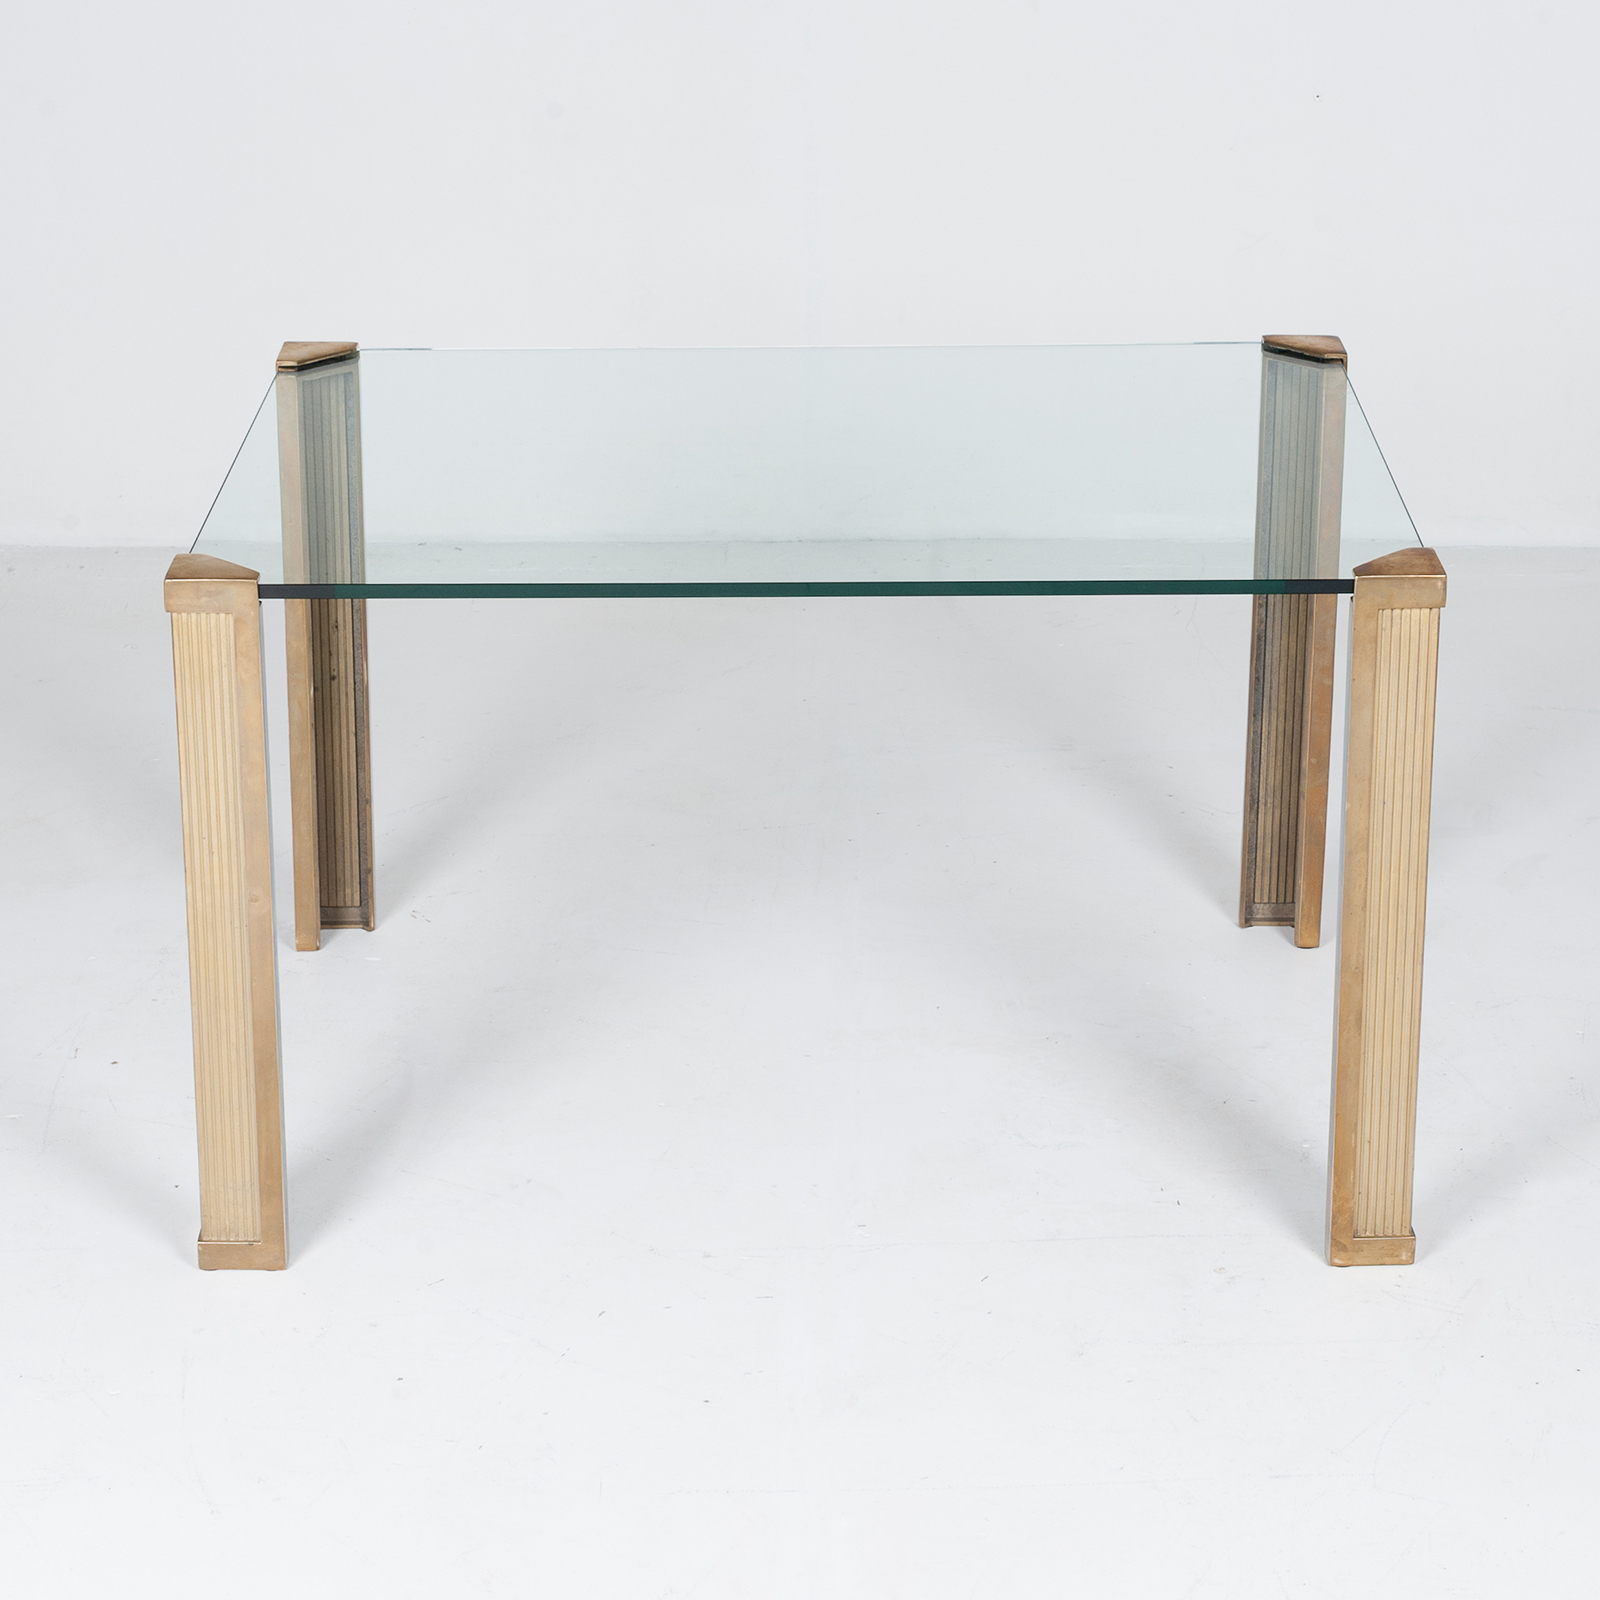 Dining Table With Solid Brass Cast Legs And Glass Top By Peter Ghyczy, 1970s, The Netherlands 88